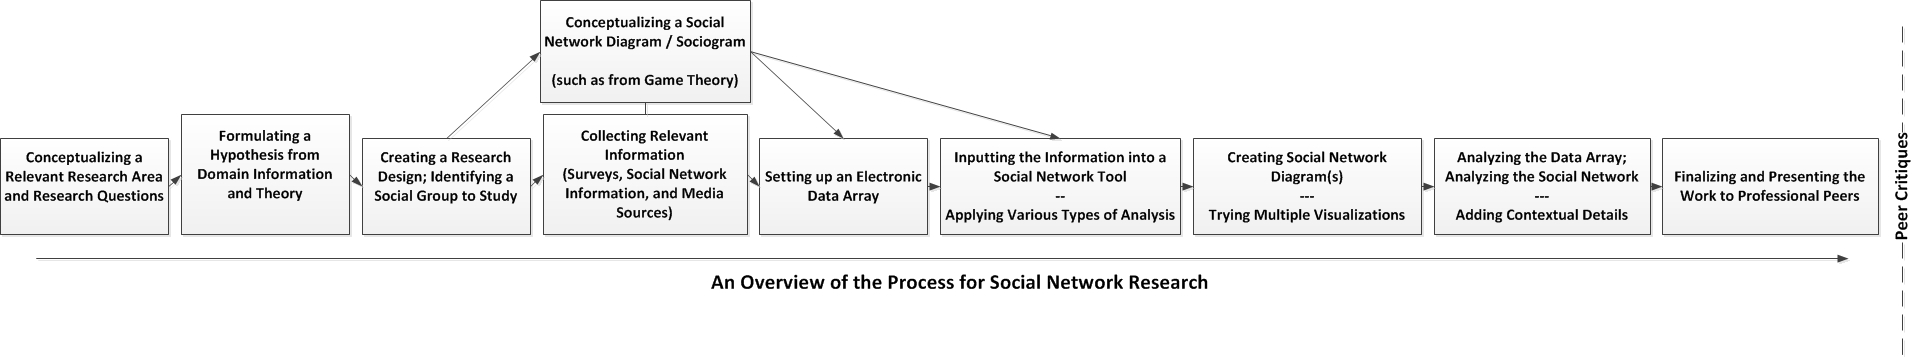 Building and Analyzing Node-Link Diagrams to Understand Social Networks